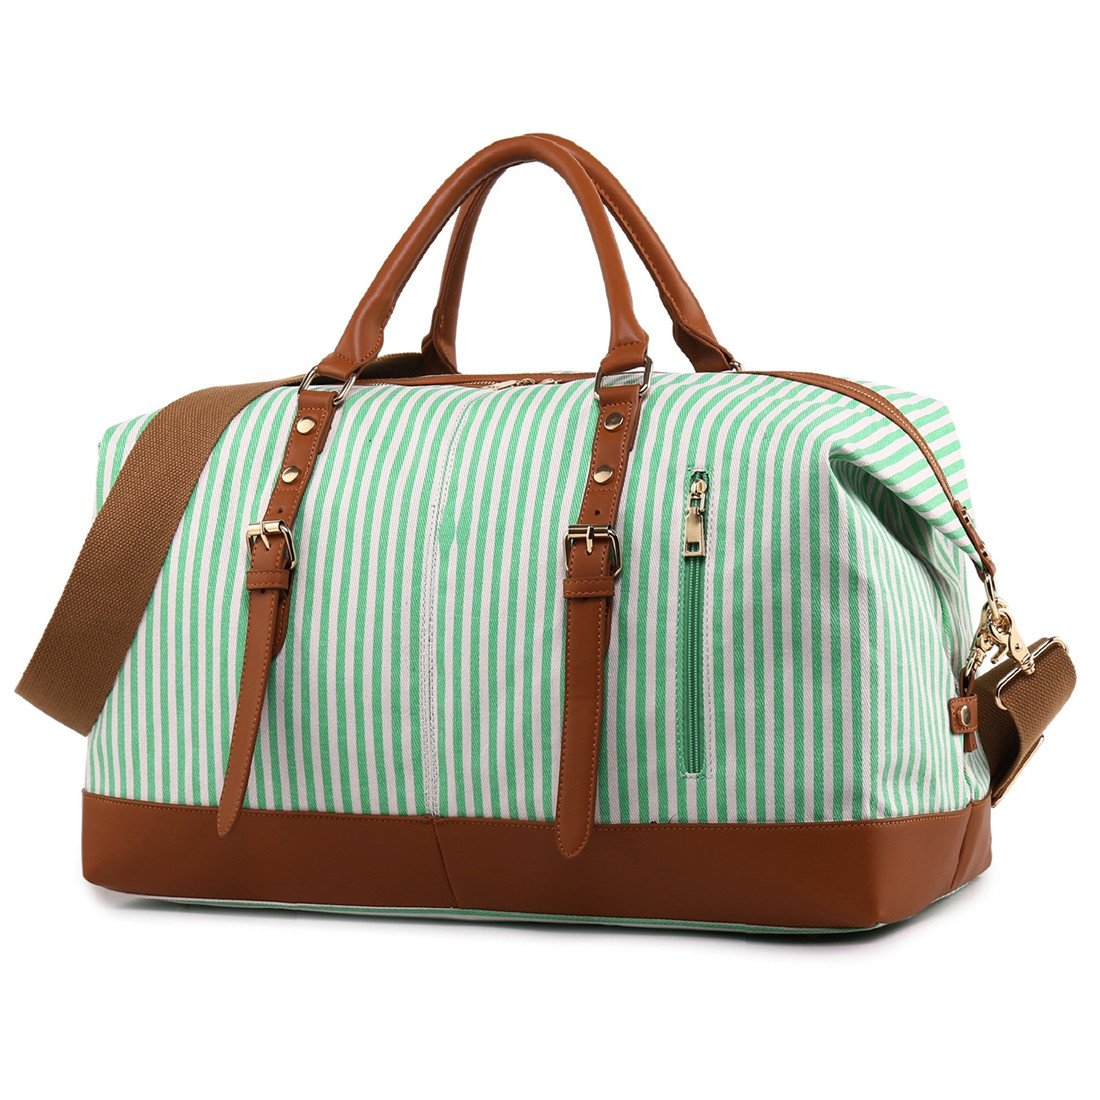 CAMTOP Weekend Travel Bag Ladies Women Duffle Tote Bags PU Leather Trim Canvas Overnight Bag (Green)